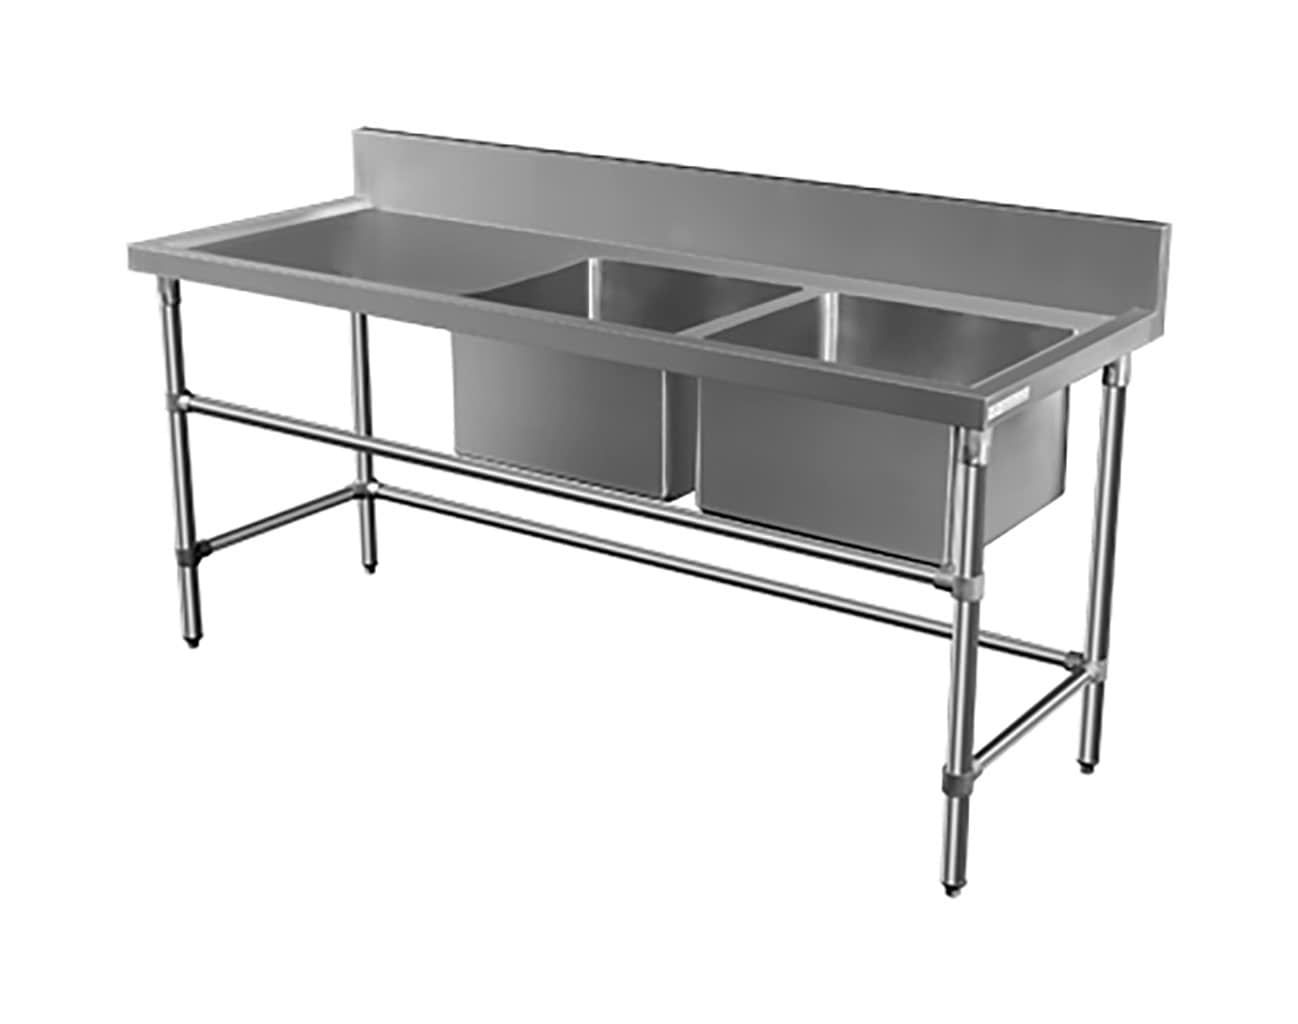 Double Bowl Stainless Restaurant Sink – Left Bench, 1900 x 700 x 900mm high